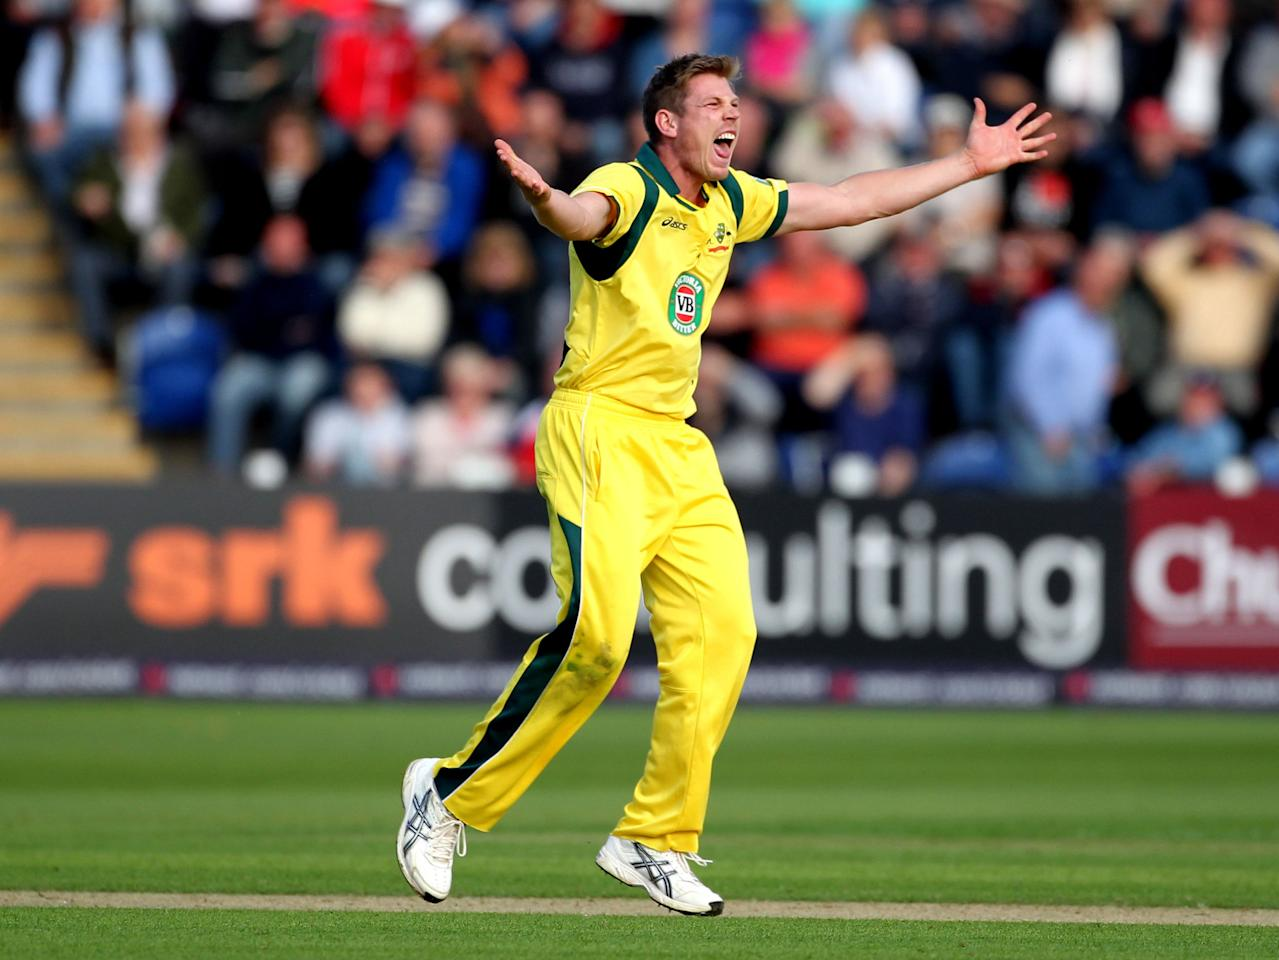 Australia's James Faulkner appeals successfully for the wicket of England's Ravi Bopara during the fourth one day international at the SWALEC Stadium, Cardiff.